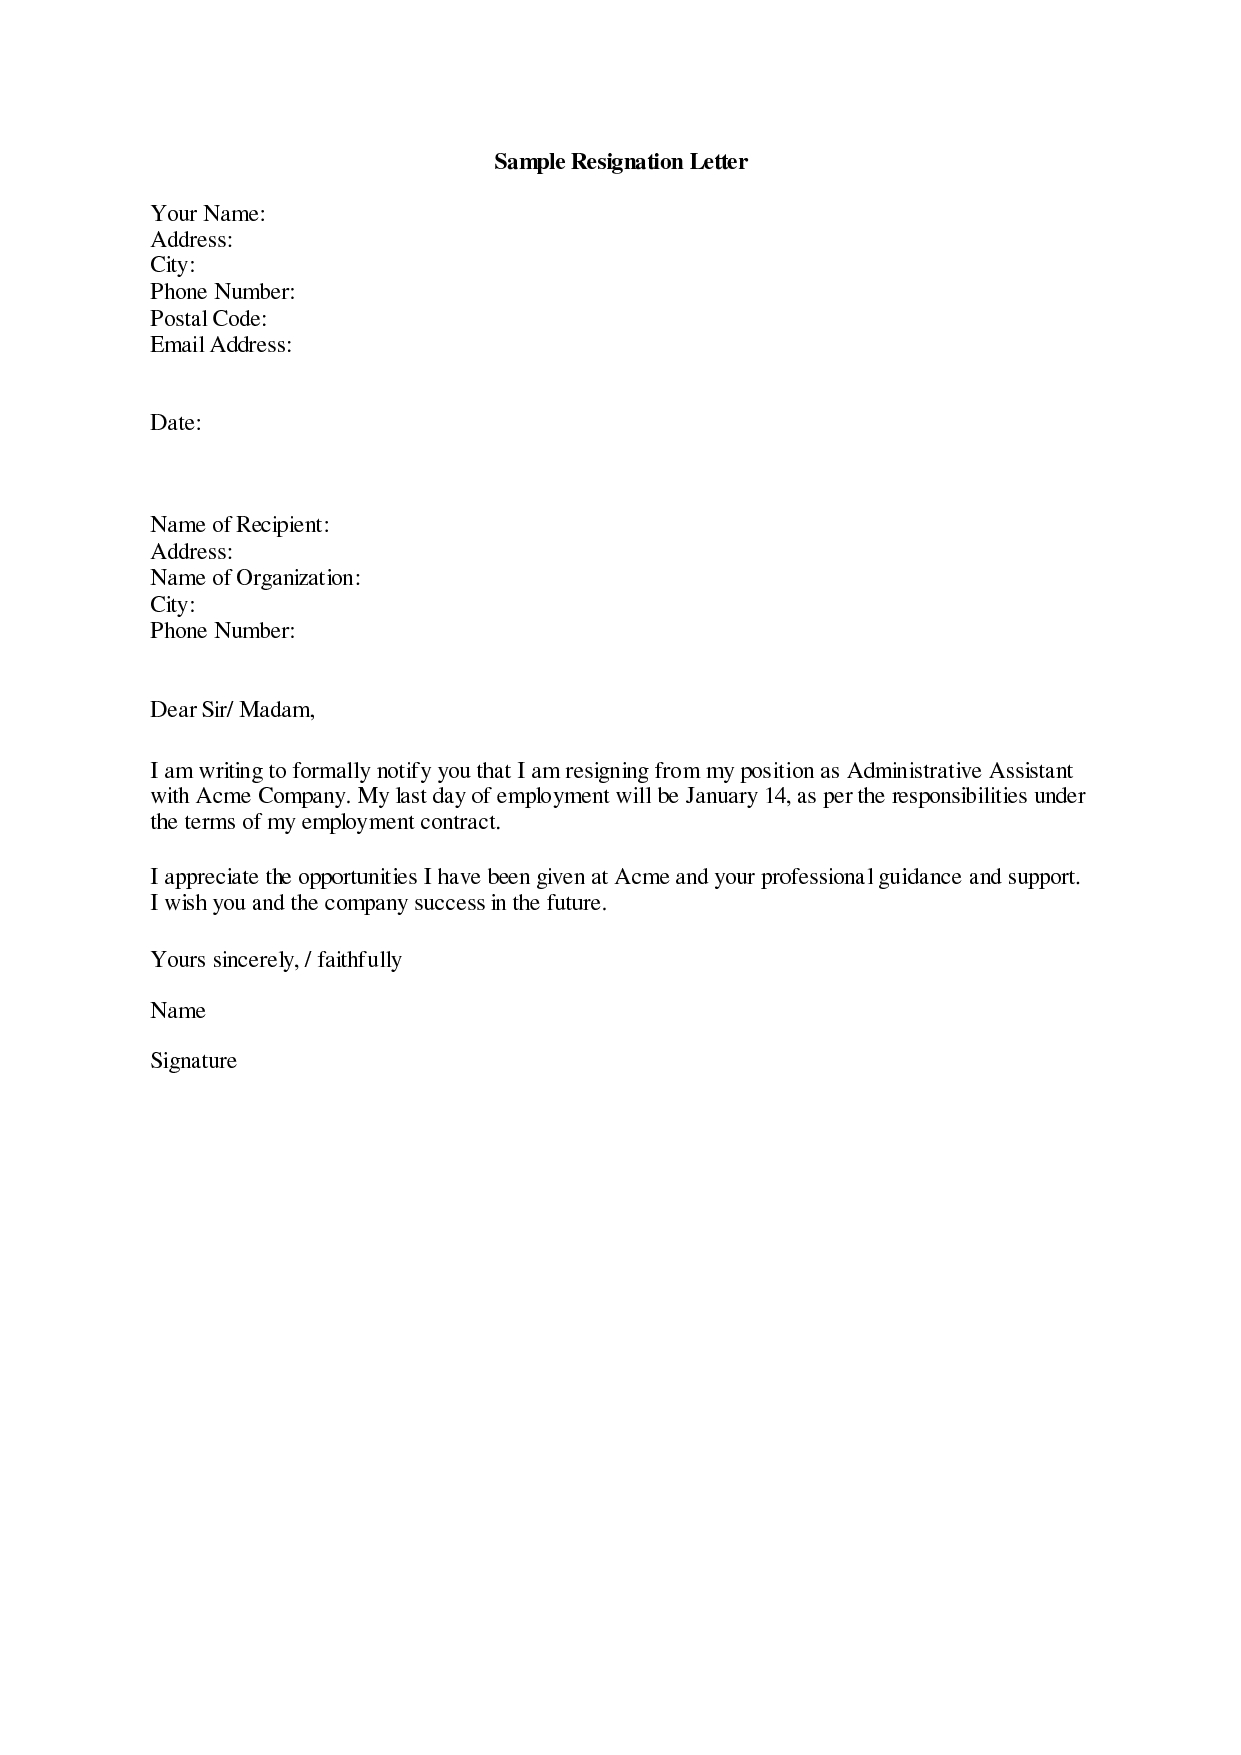 Write A Letter to Your Future Self Template - Resignation Letter Sample 19 Letter Of Resignation